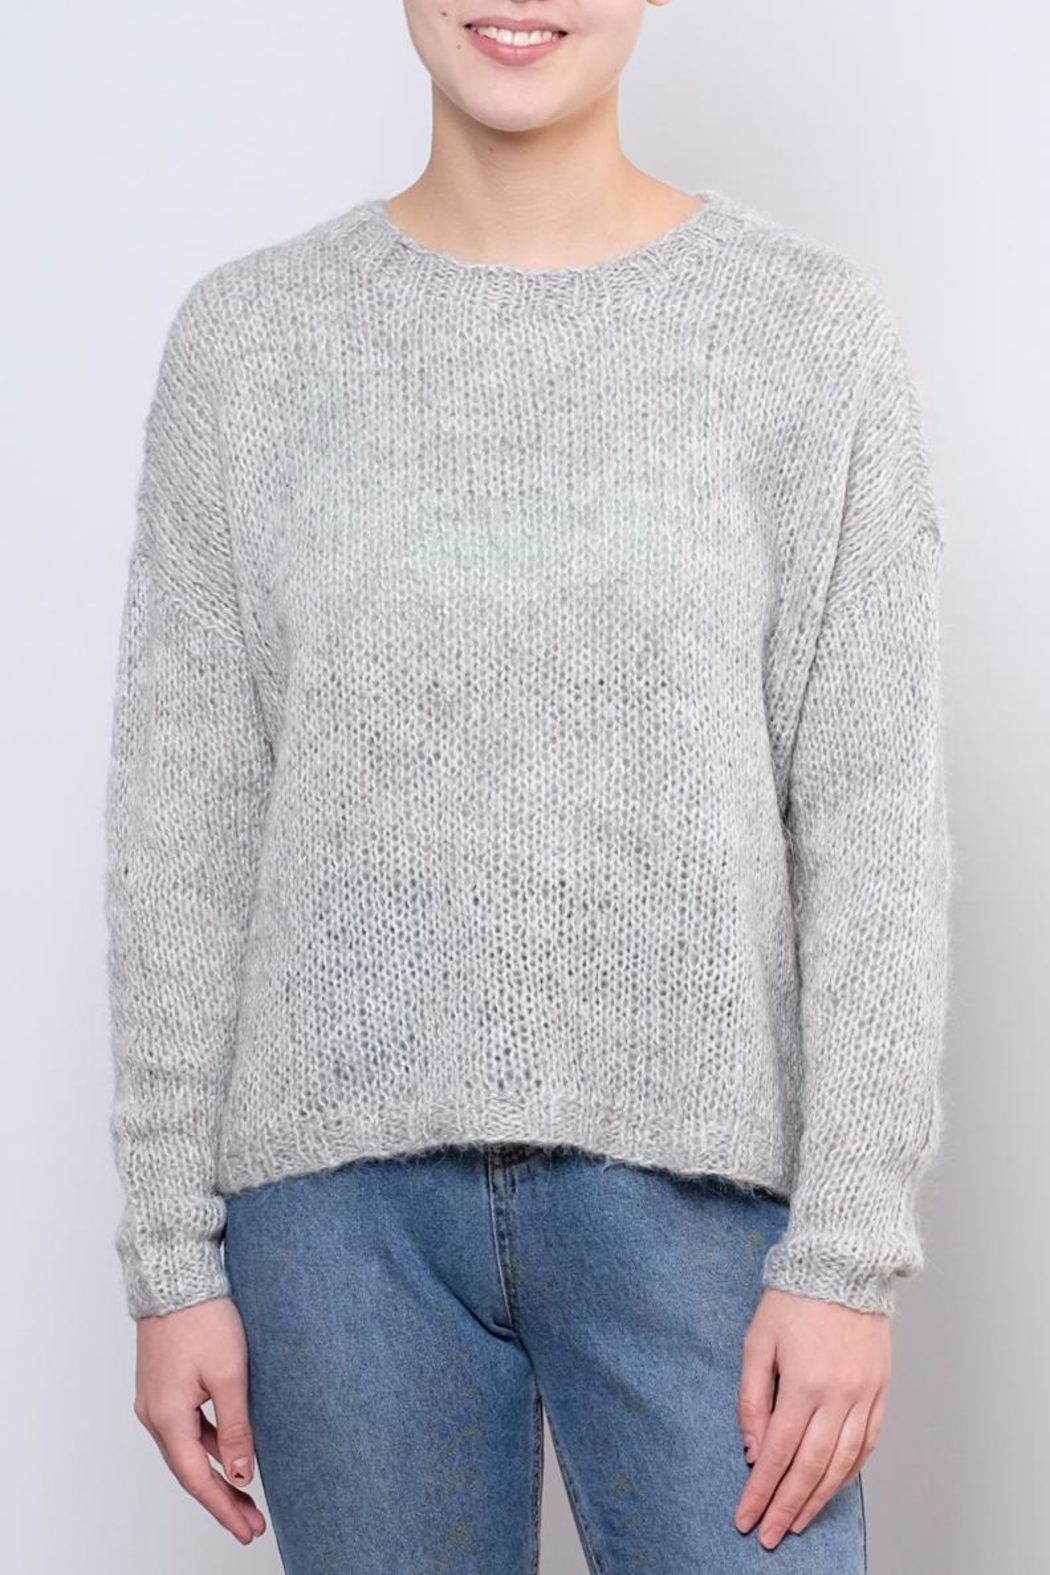 Noisy May Janis Knit Pullover Top - Main Image